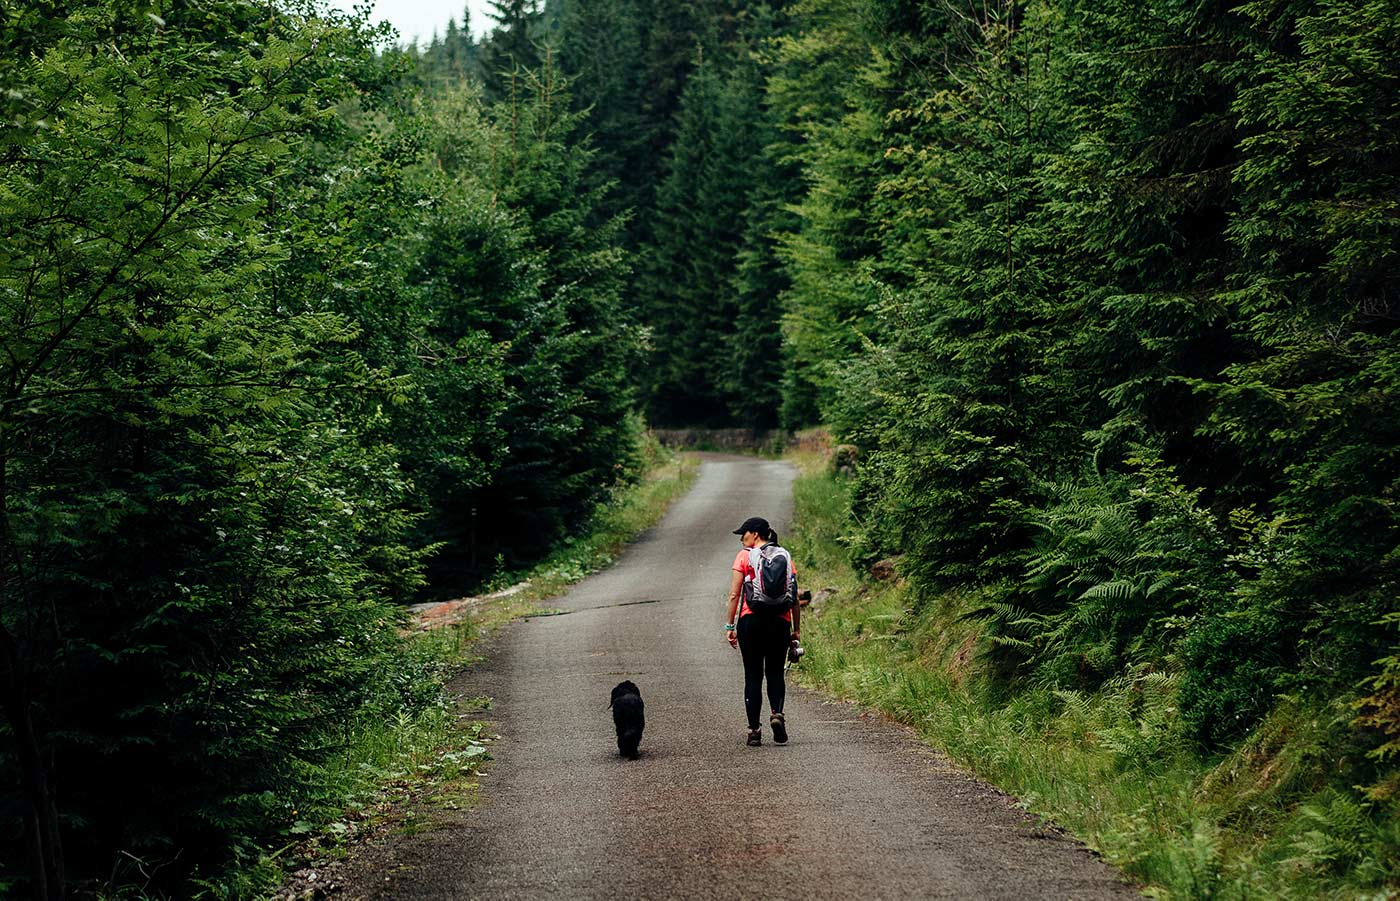 Woman and her dog on a hike in the forest.